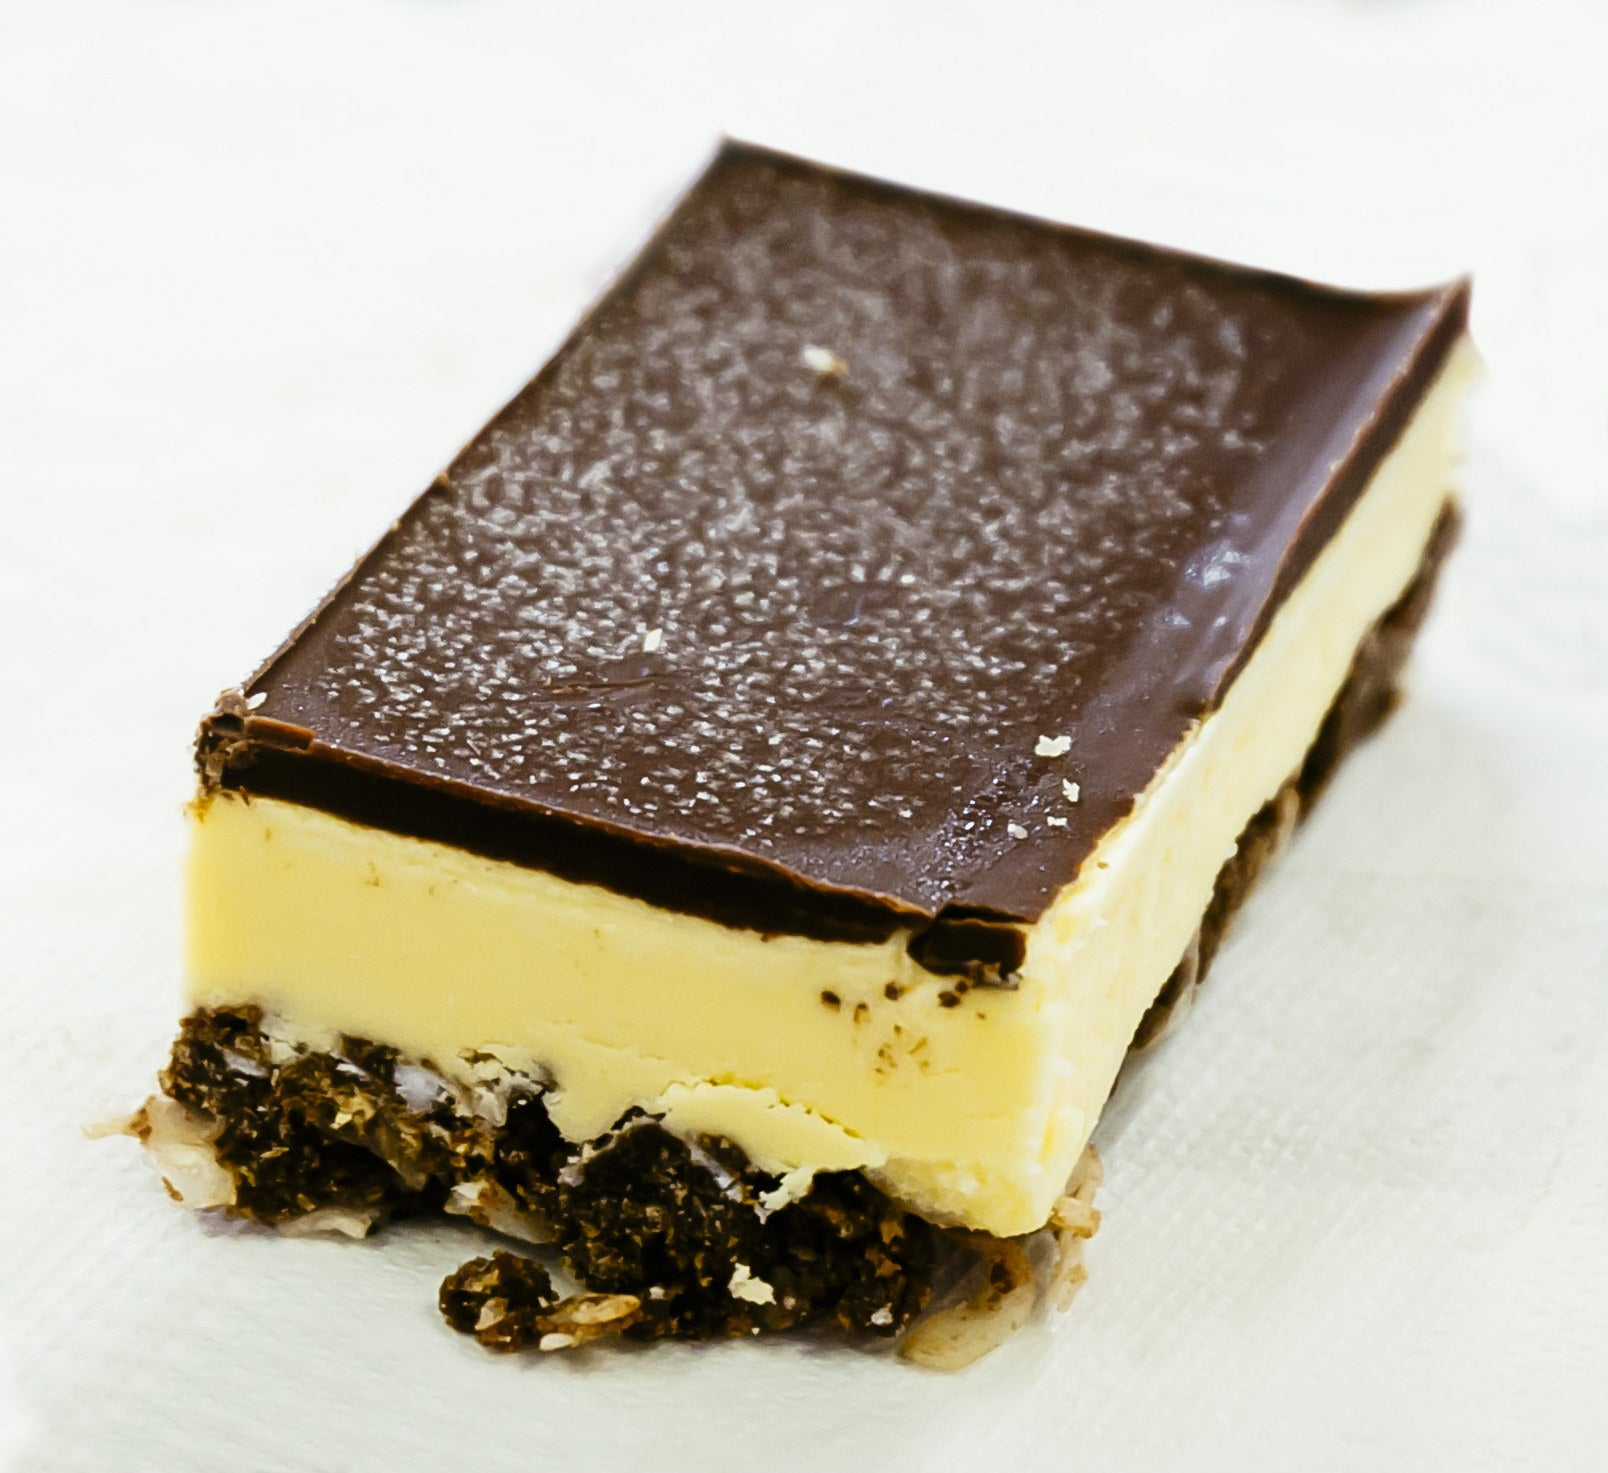 The Nanaimo bar is placed simply against a white backdrop